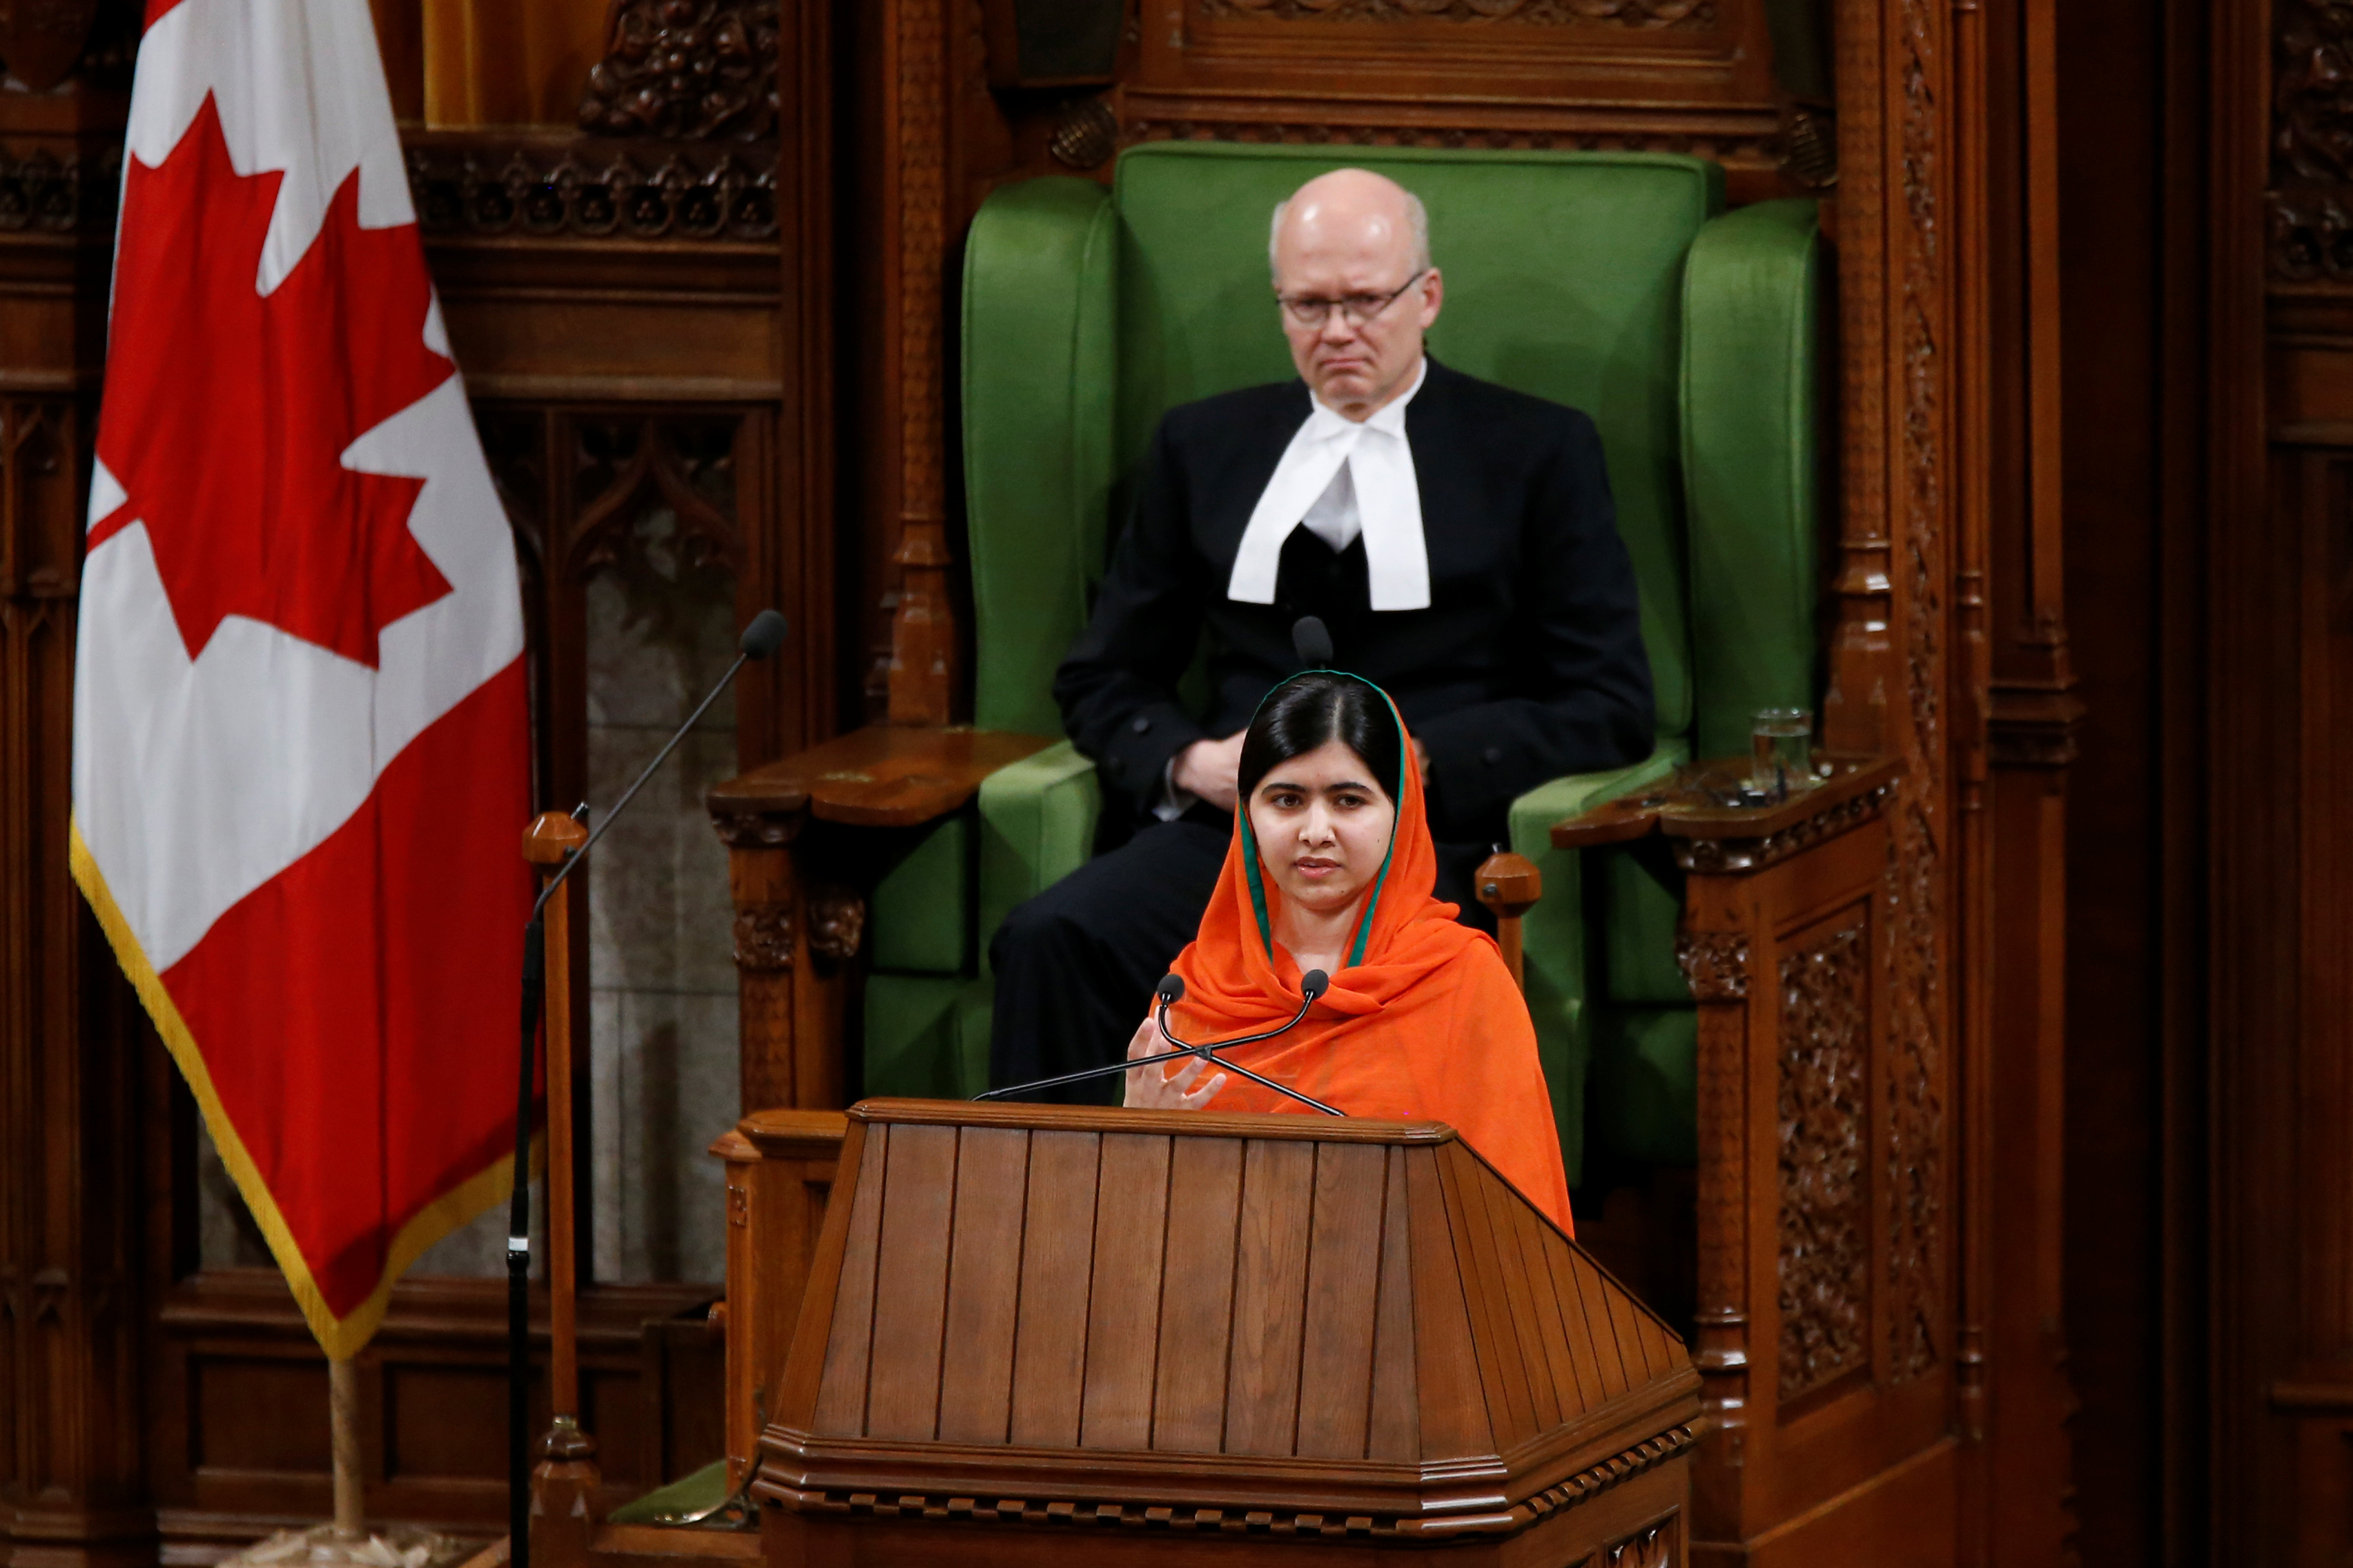 Pakistani Nobel Peace Prize laureate Malala Yousafzai addresses a joint session of Parliament in the House of Commons in Ottawa, Ontario, Canada, April 12, 2017. REUTERS/Chris Wattie - RTX359WG